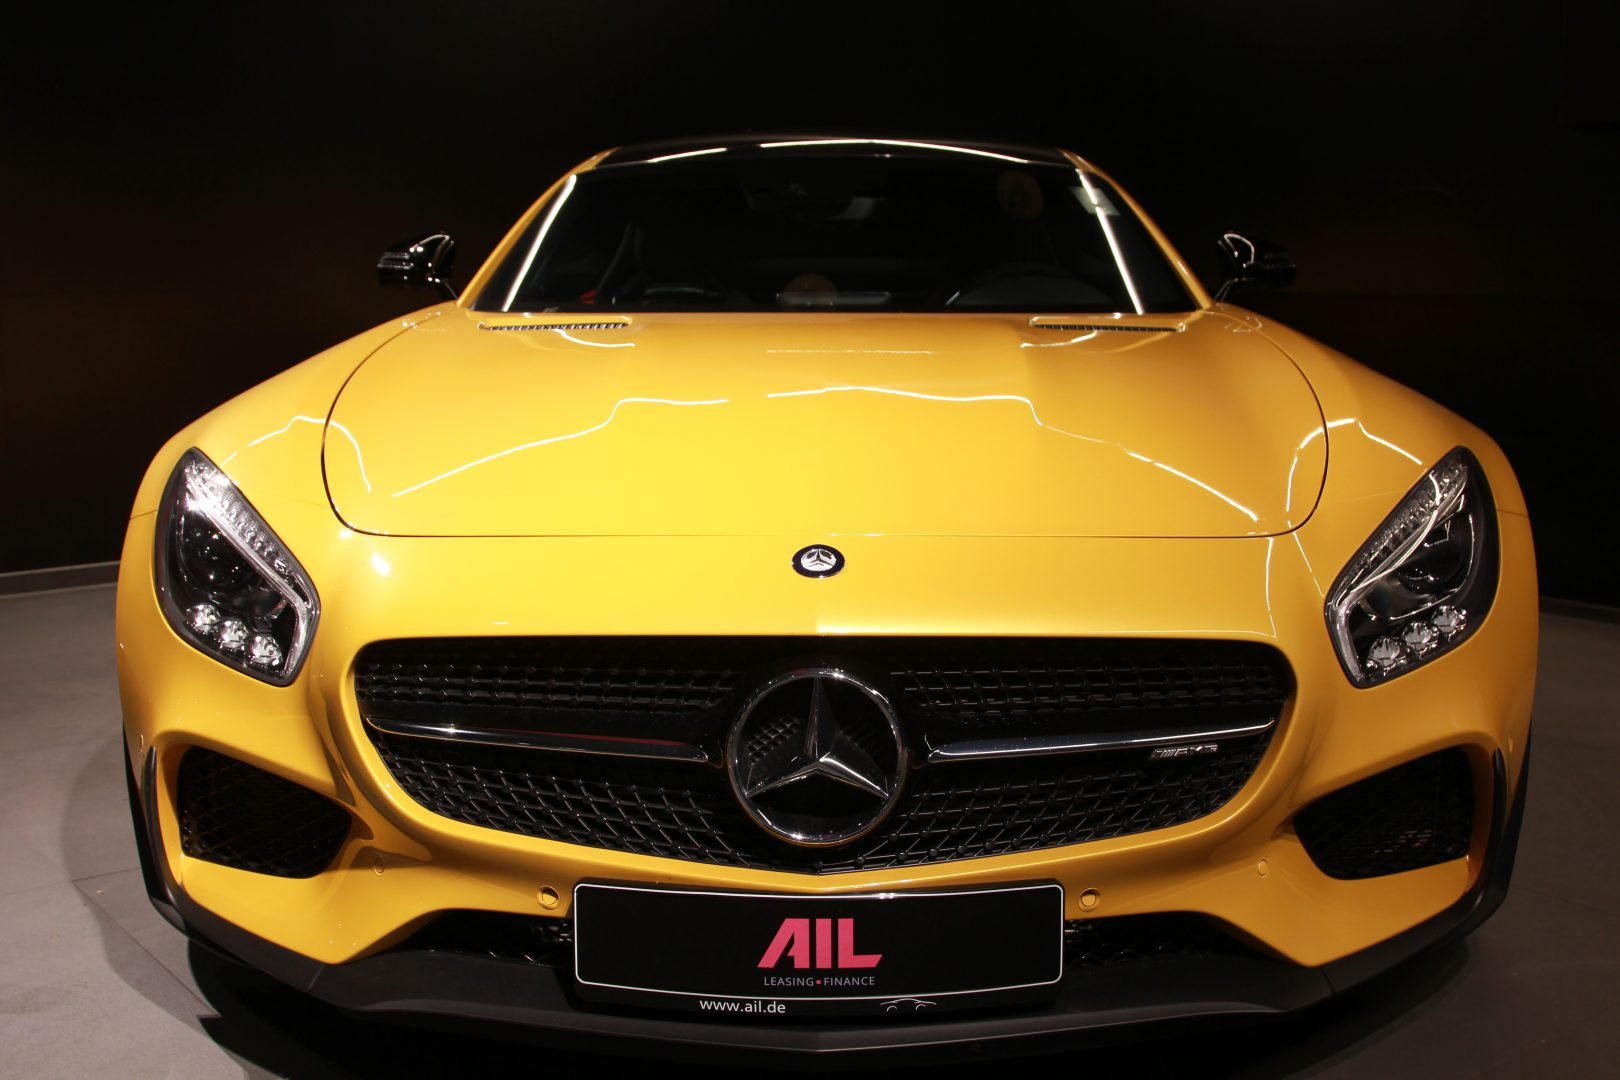 mercedes benz amg gt s edition 1 carbon burmester ail leasing m nchen ag. Black Bedroom Furniture Sets. Home Design Ideas